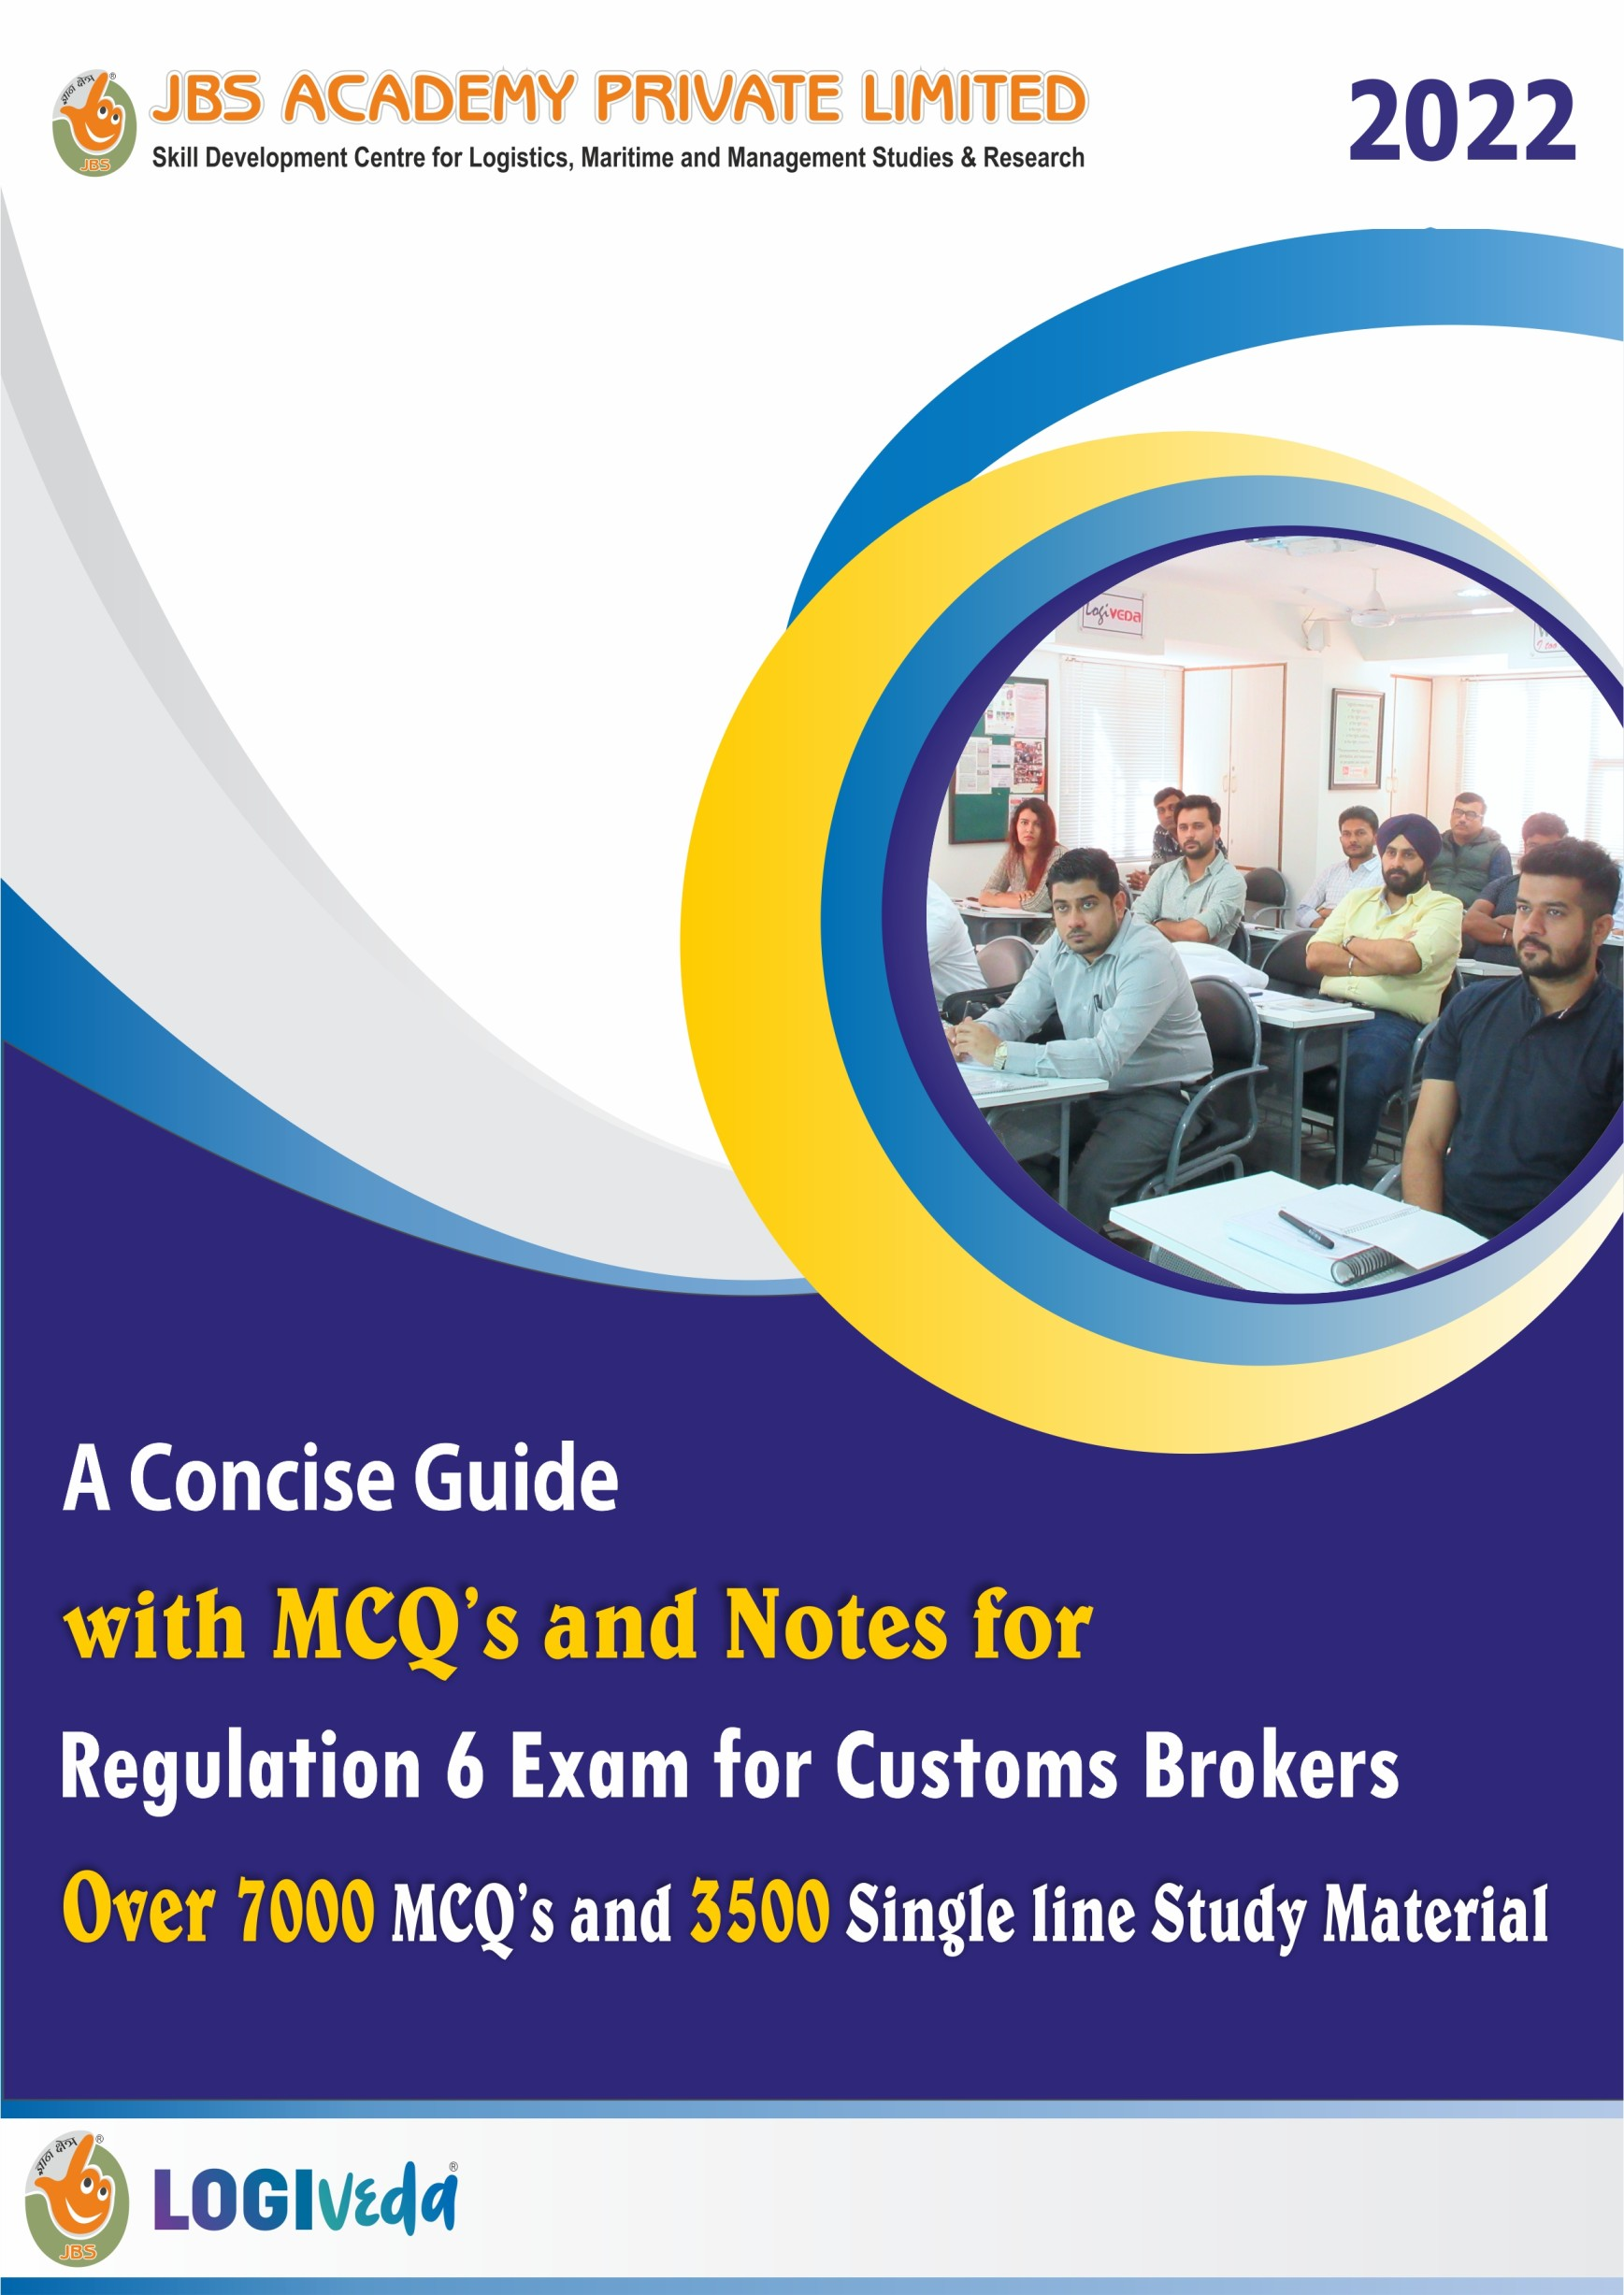 SET OF 3 PRACTICE MCQ BOOK FOR REGULATION 6 CUSTOMS BROKER EXAMINATION - FOR MARCH 2021